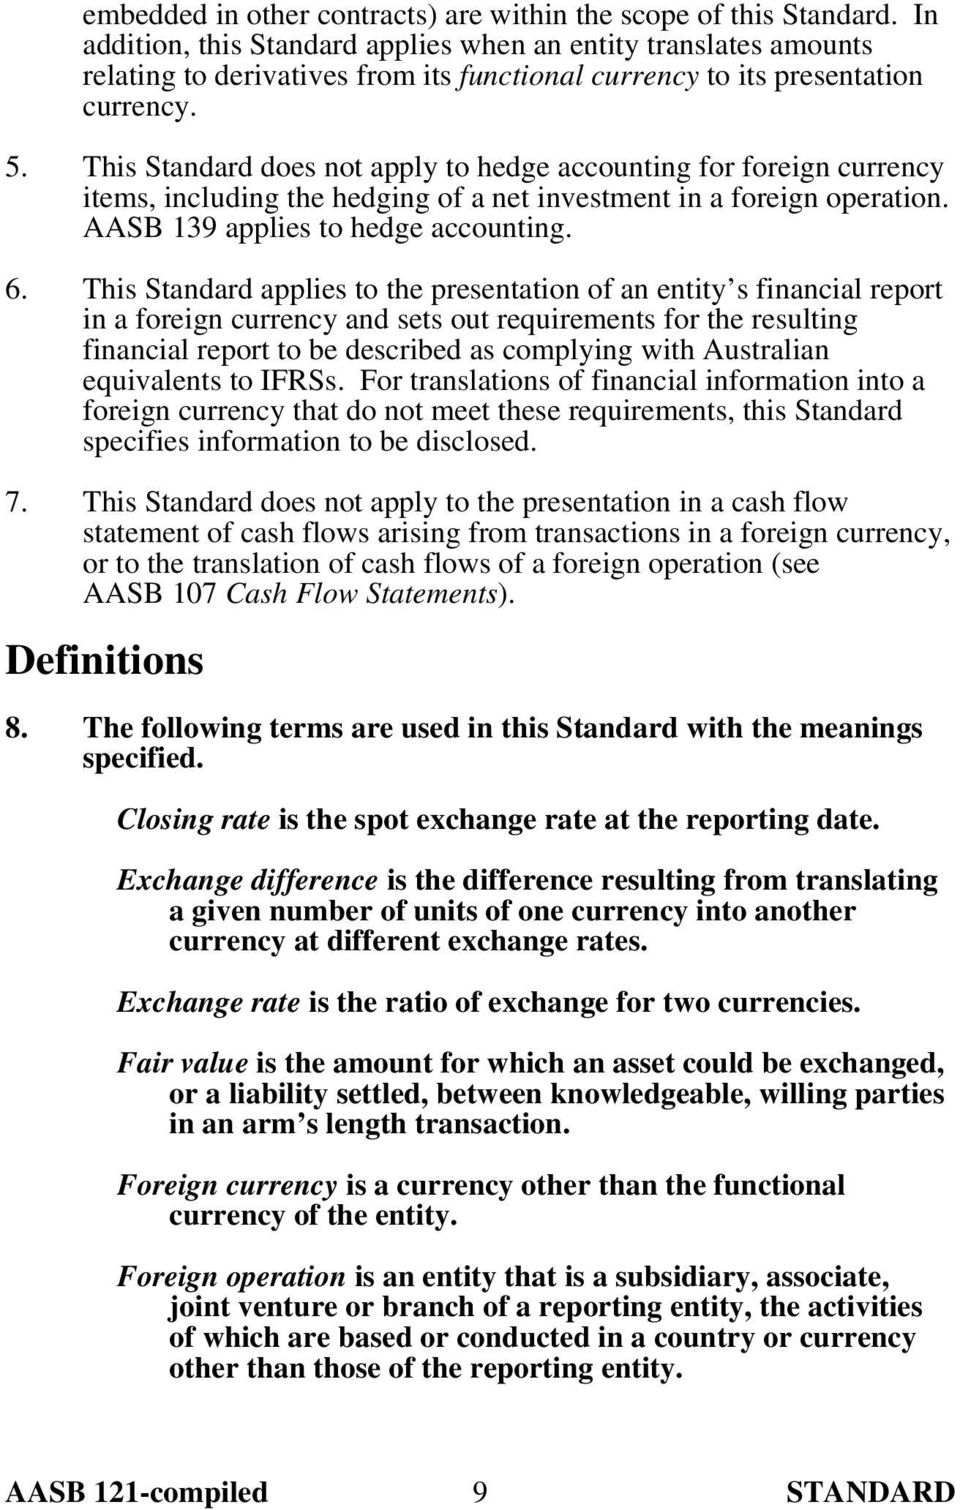 This Standard does not apply to hedge accounting for foreign currency items, including the hedging of a net investment in a foreign operation. AASB 139 applies to hedge accounting. 6.